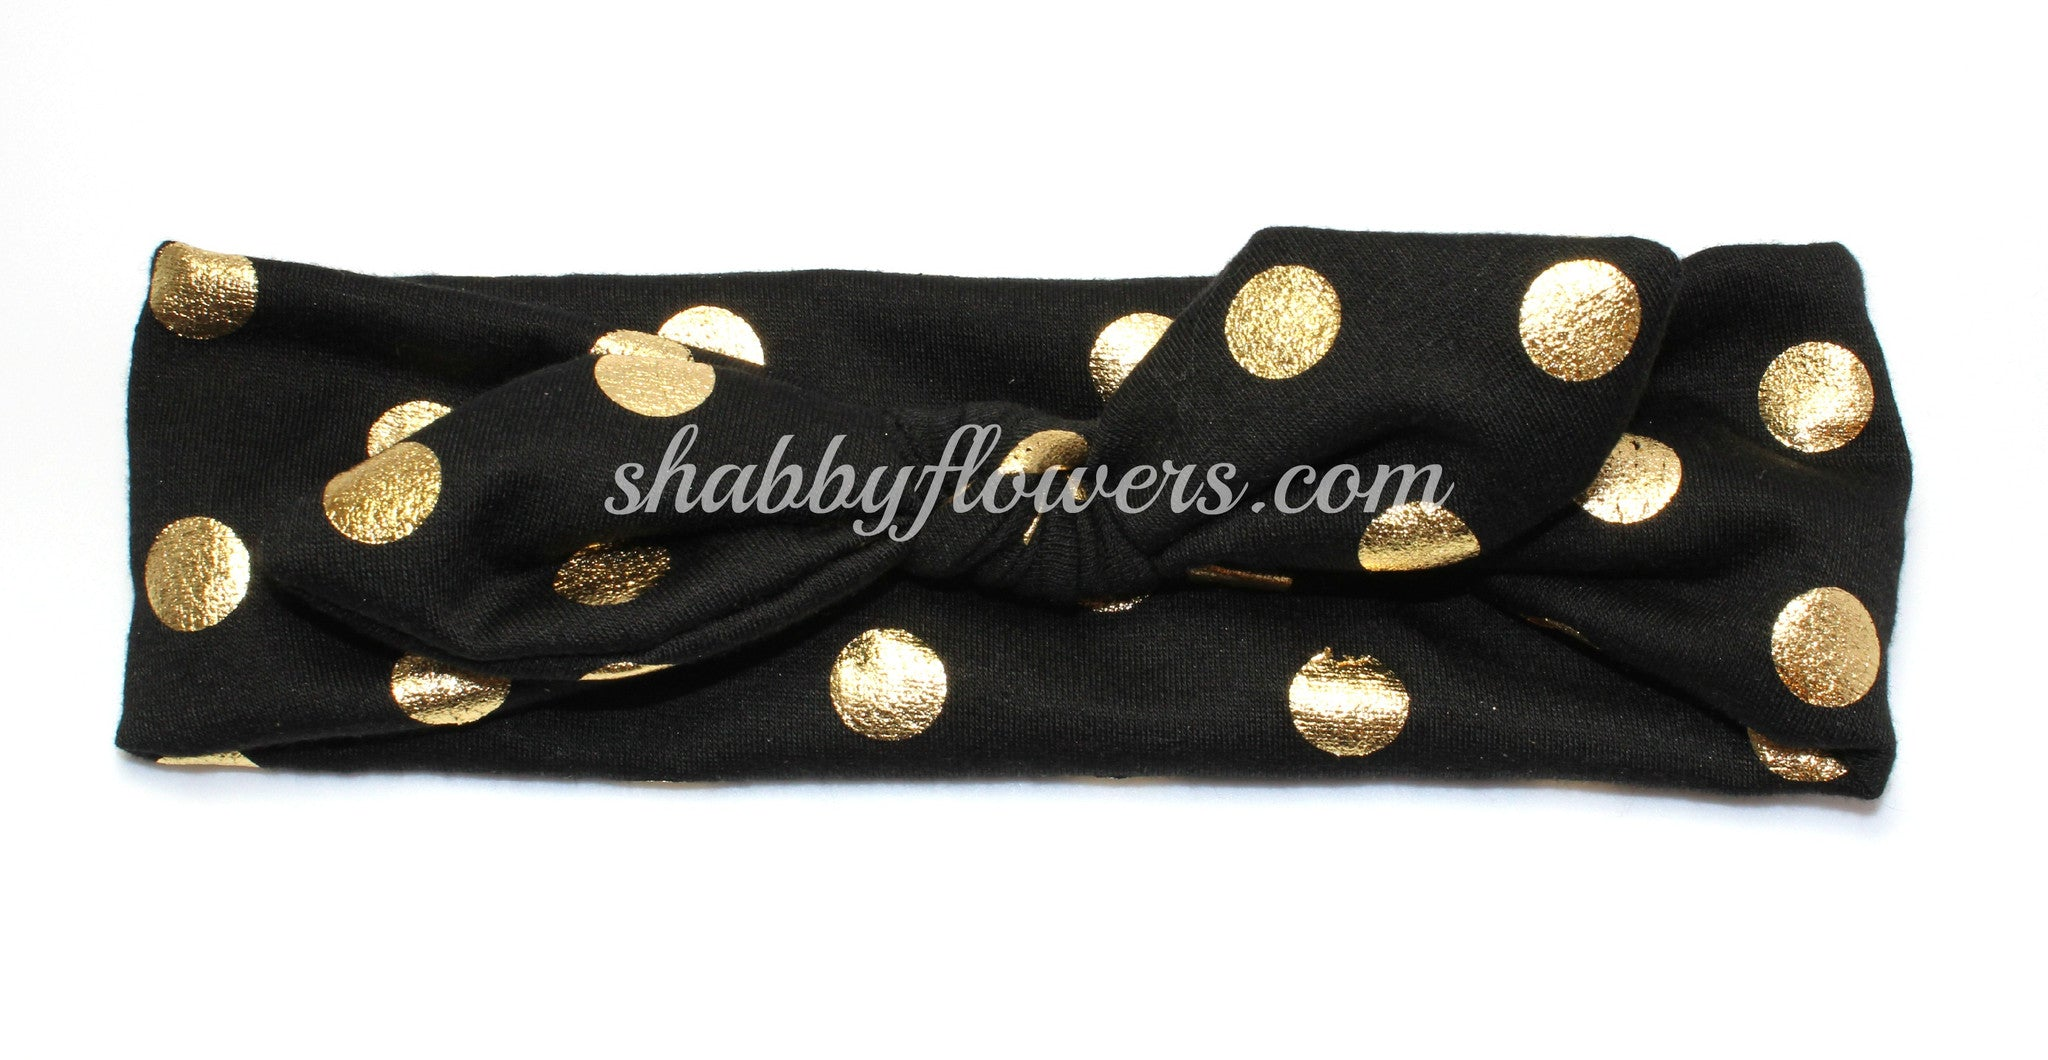 Knot Headband- Gold Foil Dots on Black - shabbyflowers.com